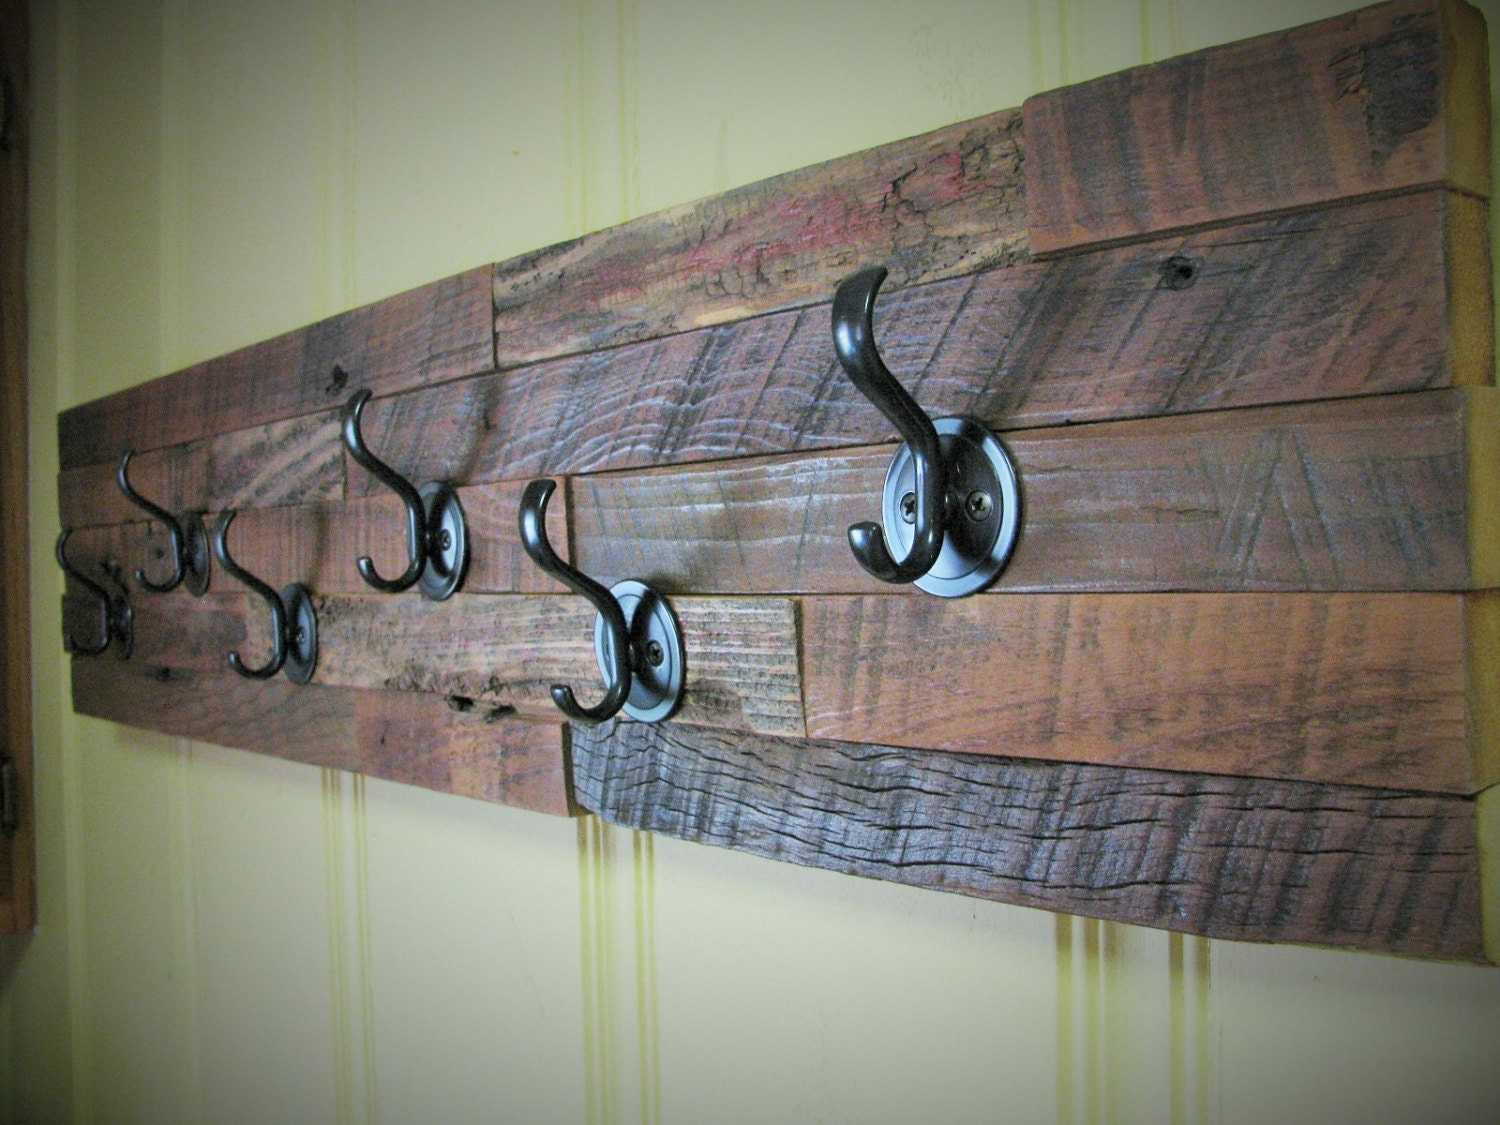 35 Coat Rack Rustic Coat Rack Repurposed Barn Wood By Rustastic. Full resolution‎  snapshot, nominally Width 1500 Height 1125 pixels, snapshot with #4E637D.